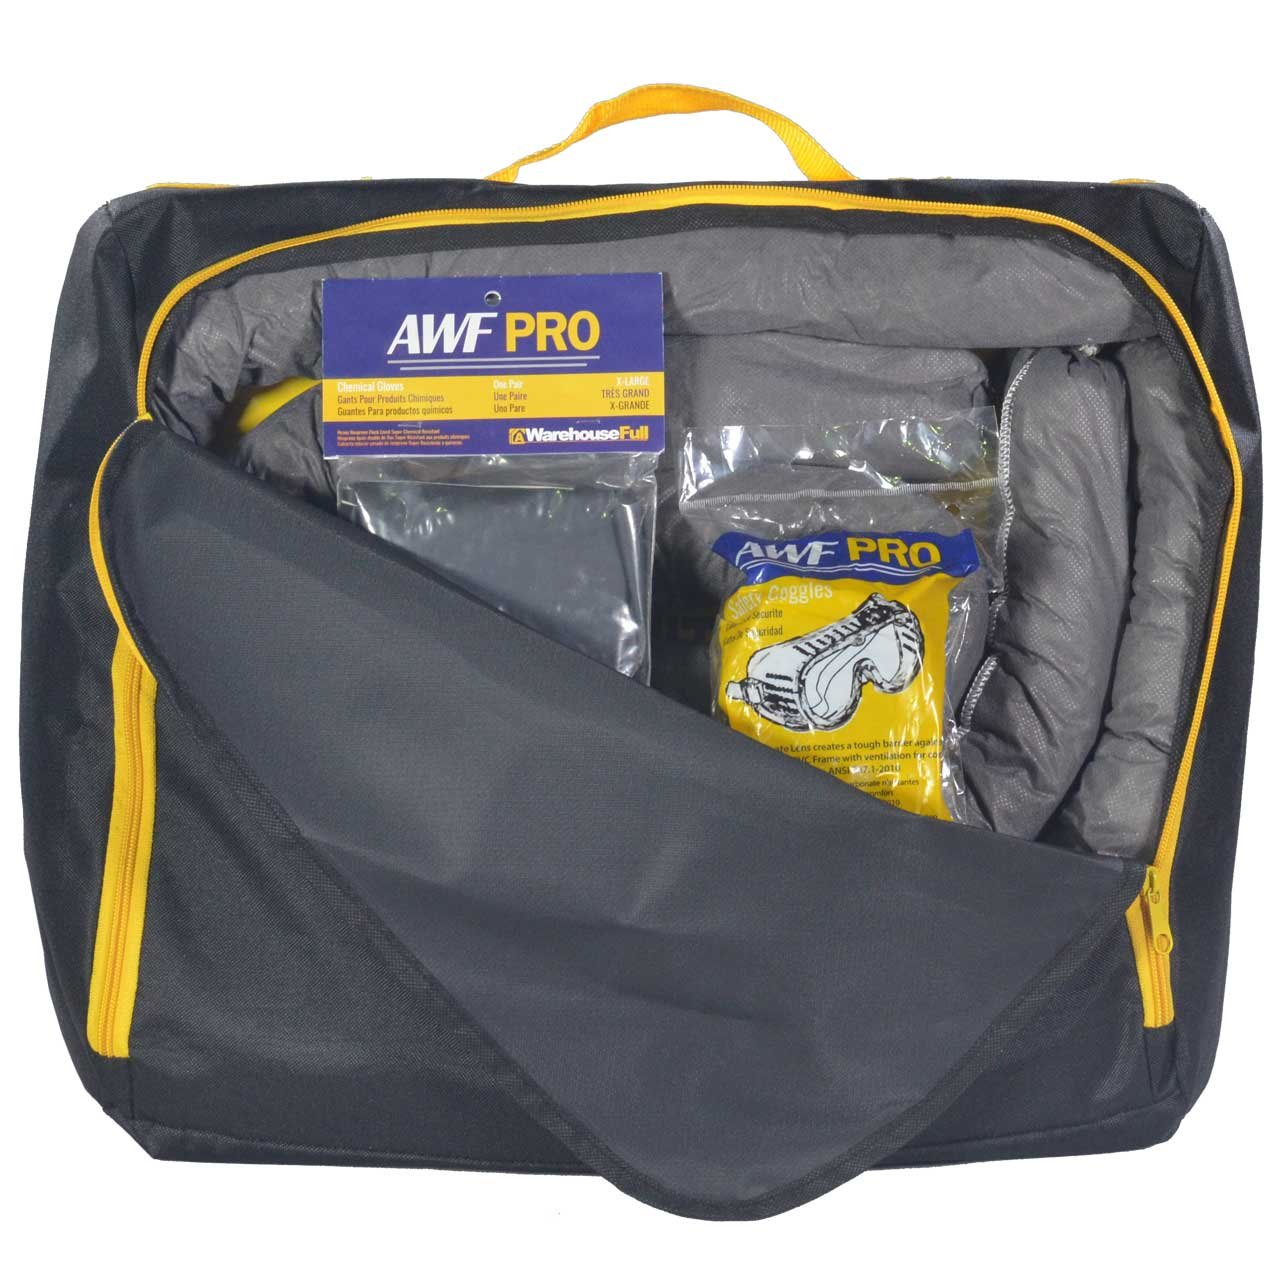 Portable Universal Spill Kit, Contains 20 Sorbent Pads, 3 Sorbent Socks, Disposal Bags, Goggles and Chemical Gloves. Packed in a HD Nylon Bags